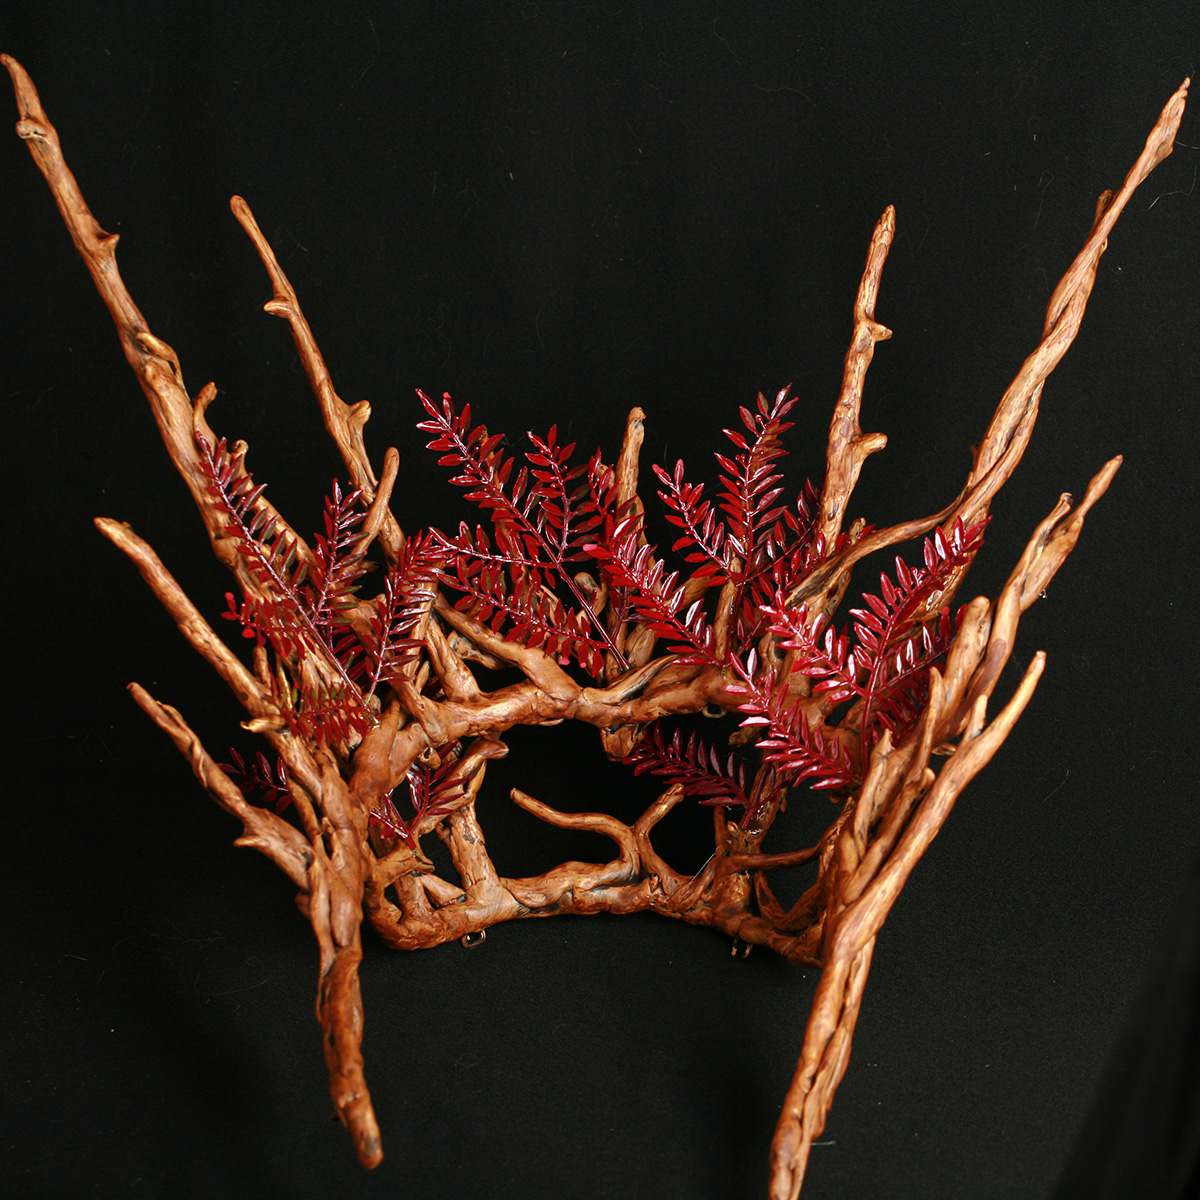 A plastic replica of a Thranduil crown - from The Hobbit -painted to look realistically like wooden twigs. Small branches of red plastic leaves are woven among the branches.